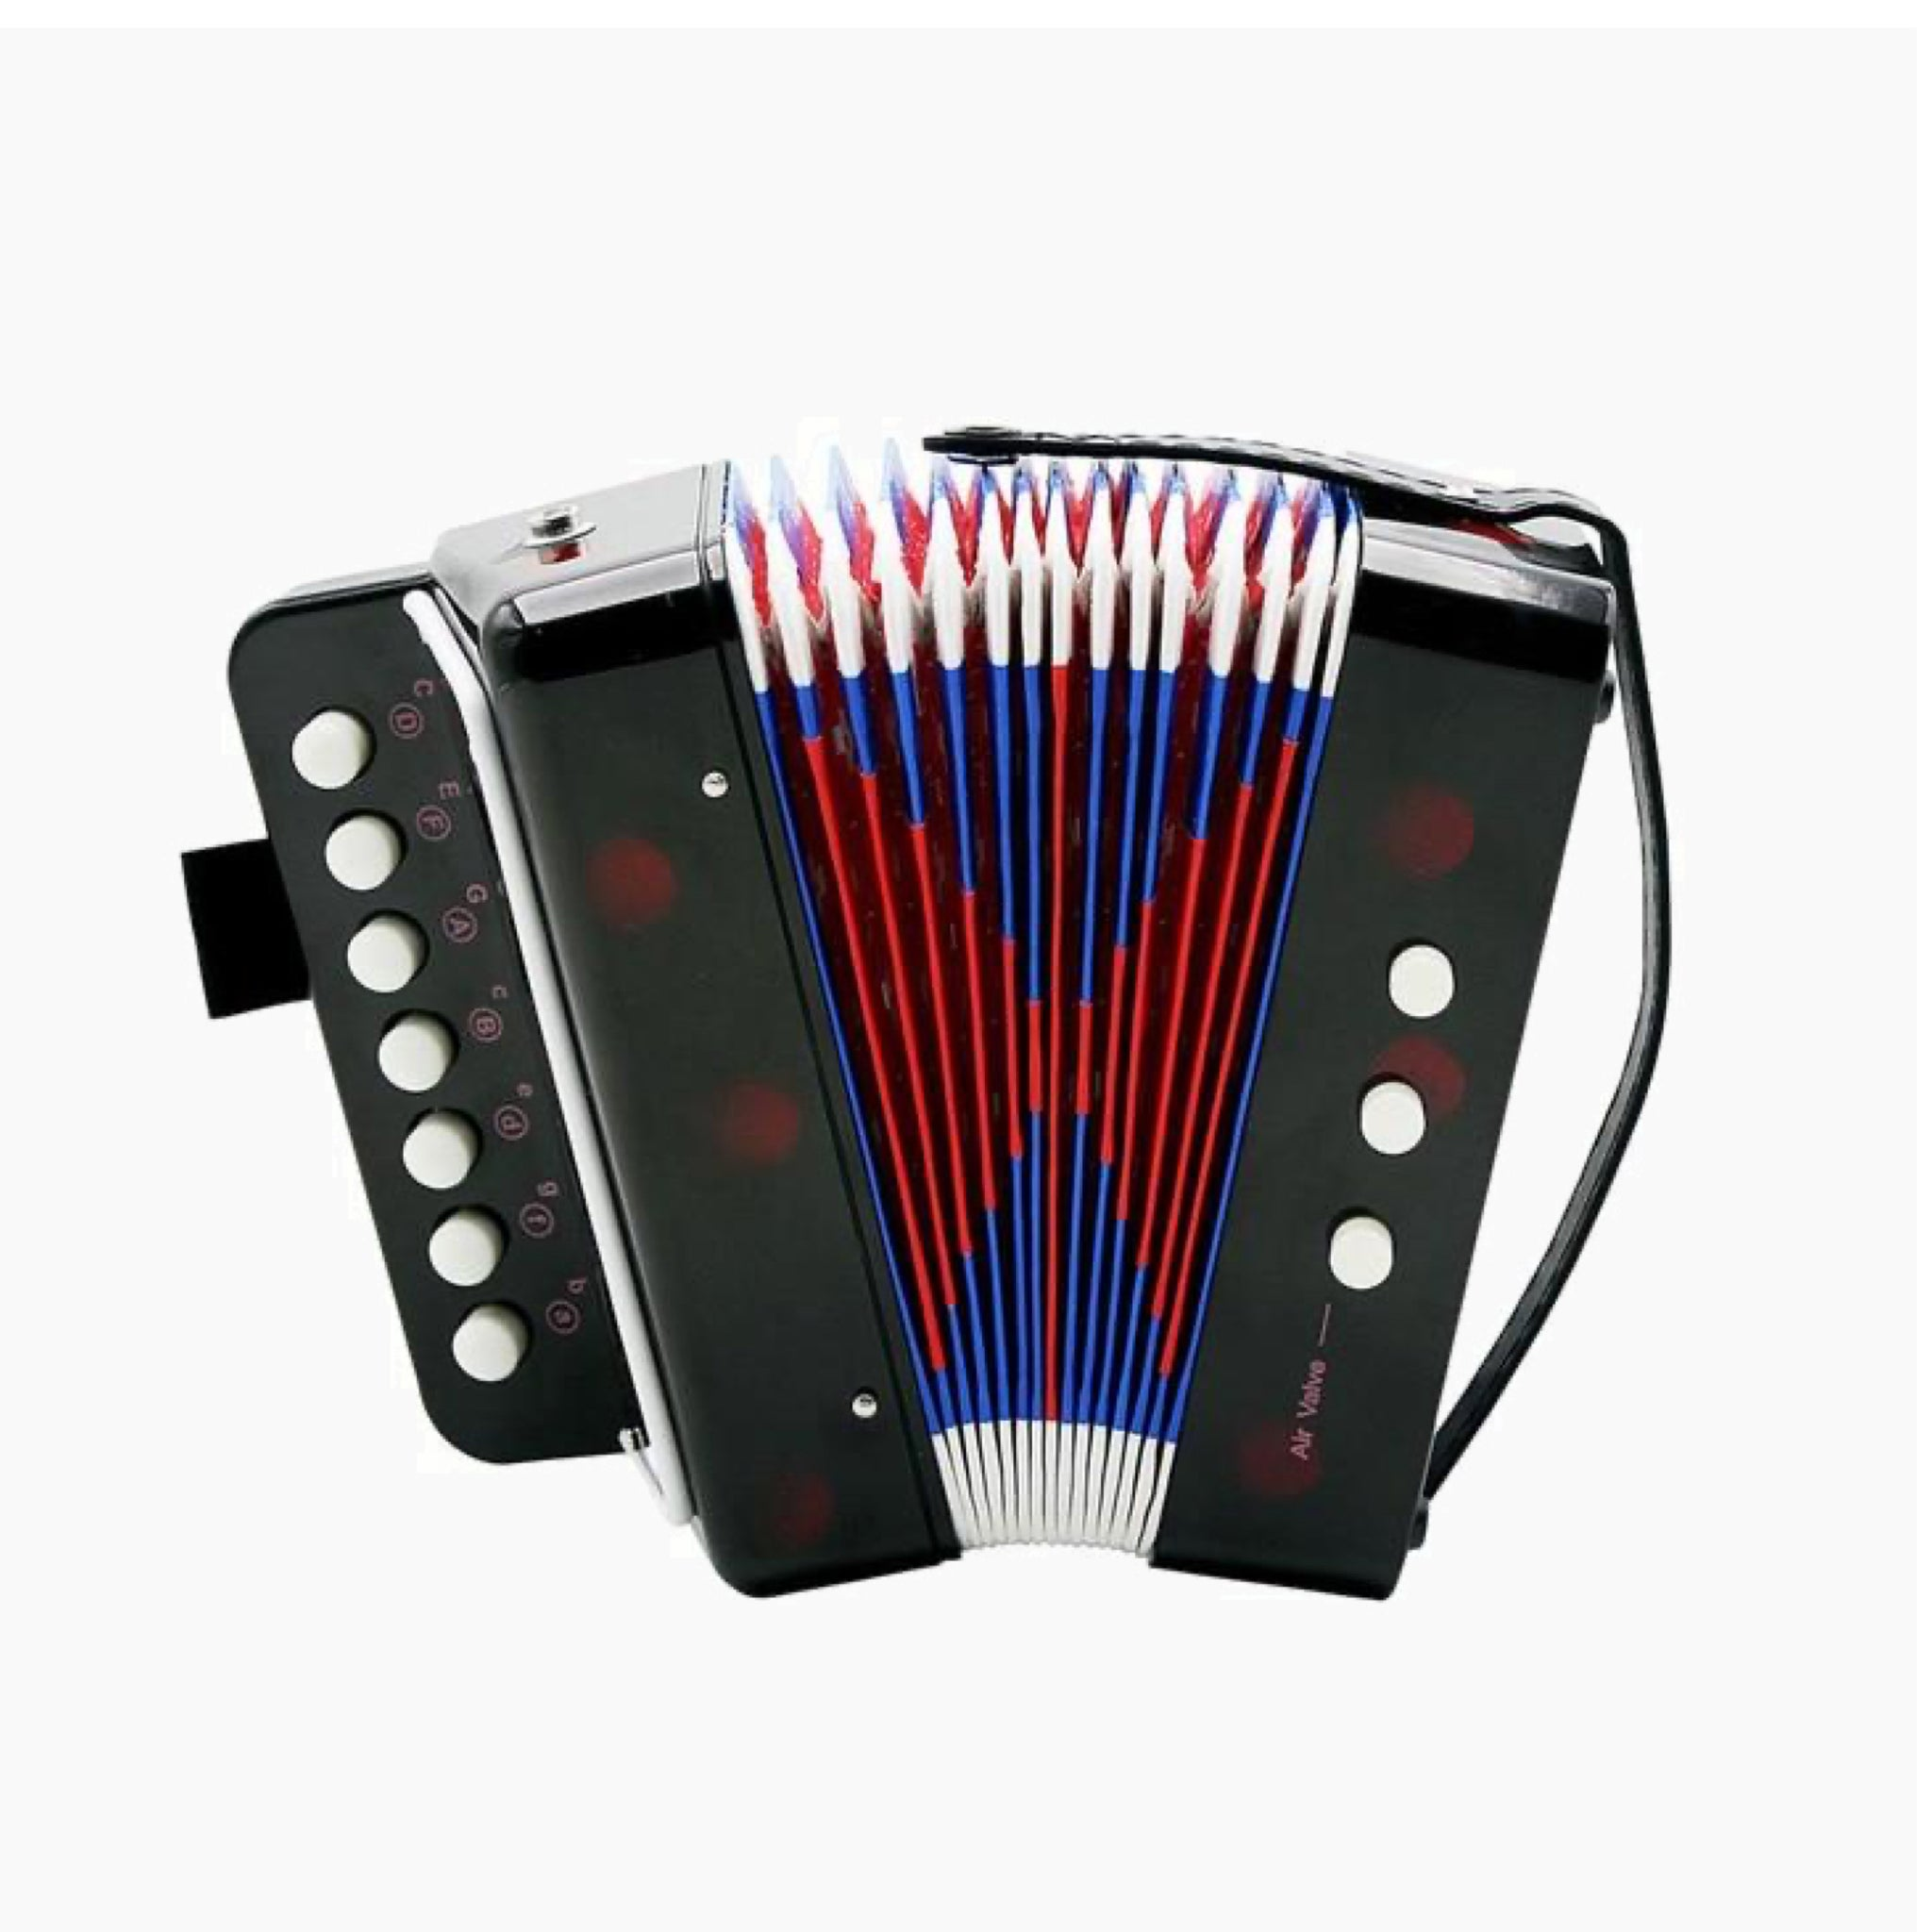 Mini Small Black Accordion 17-Key 8 Bass Educational Musical Instrument Rhythm Band Toy for Kids Children Gift